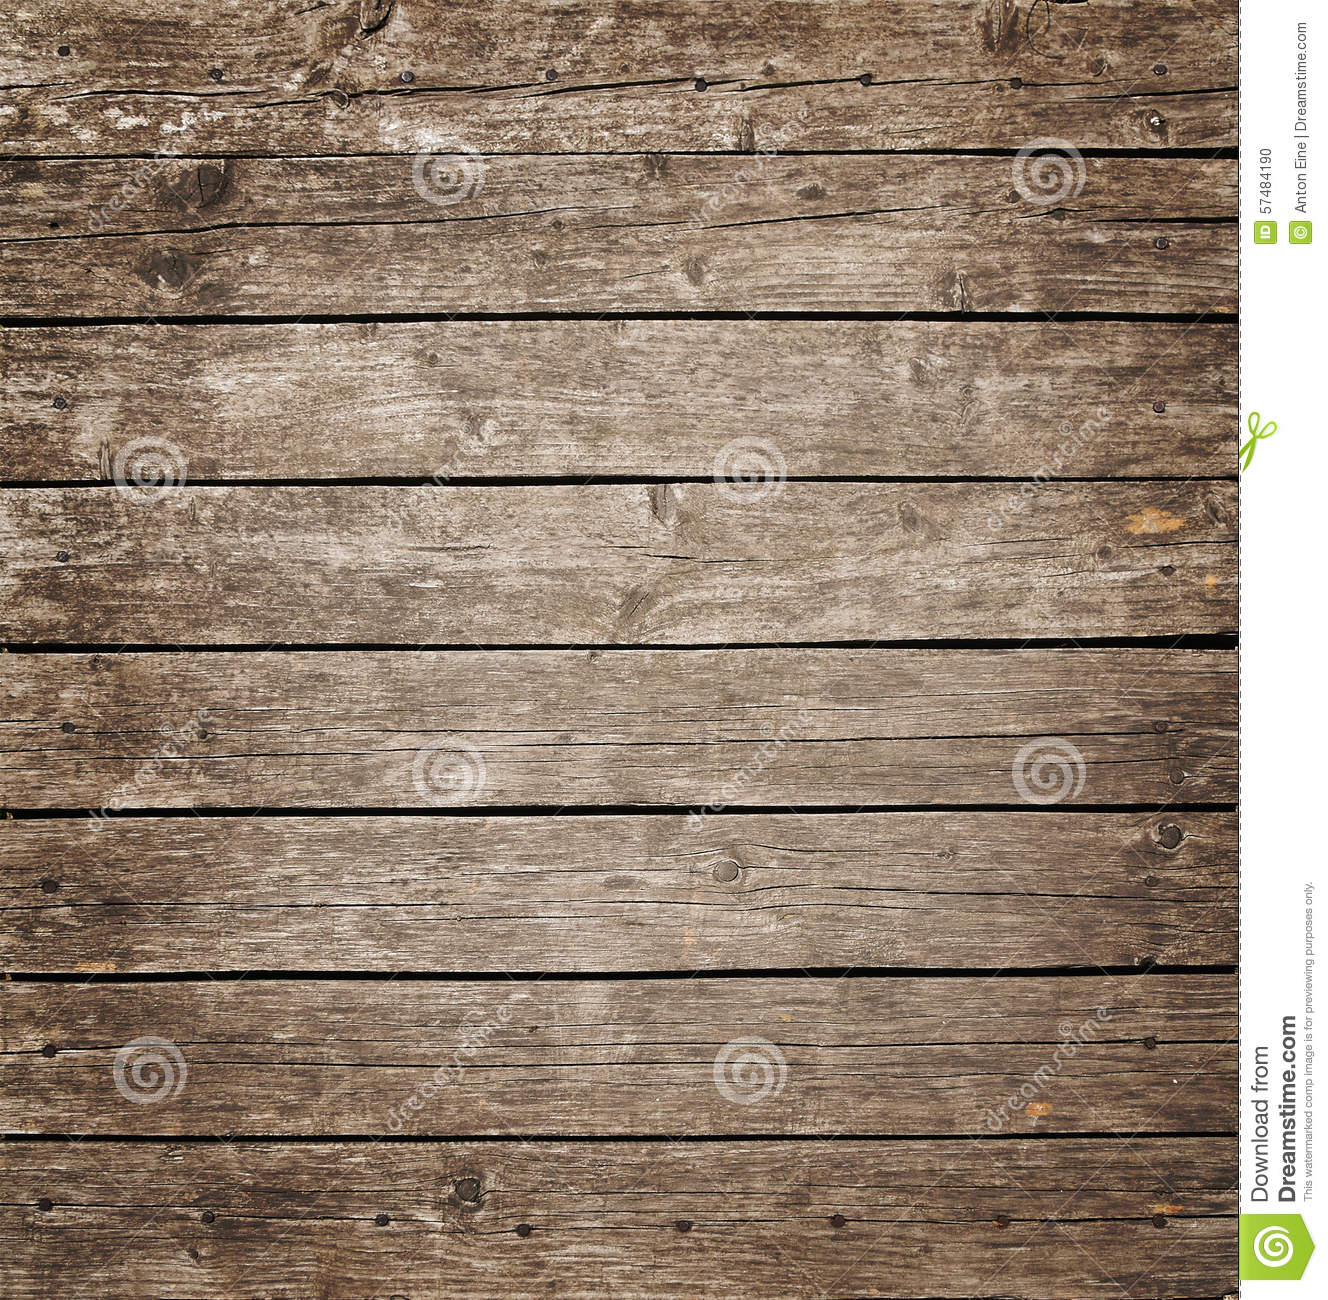 Square vintage wooden panel with horizontal planks and